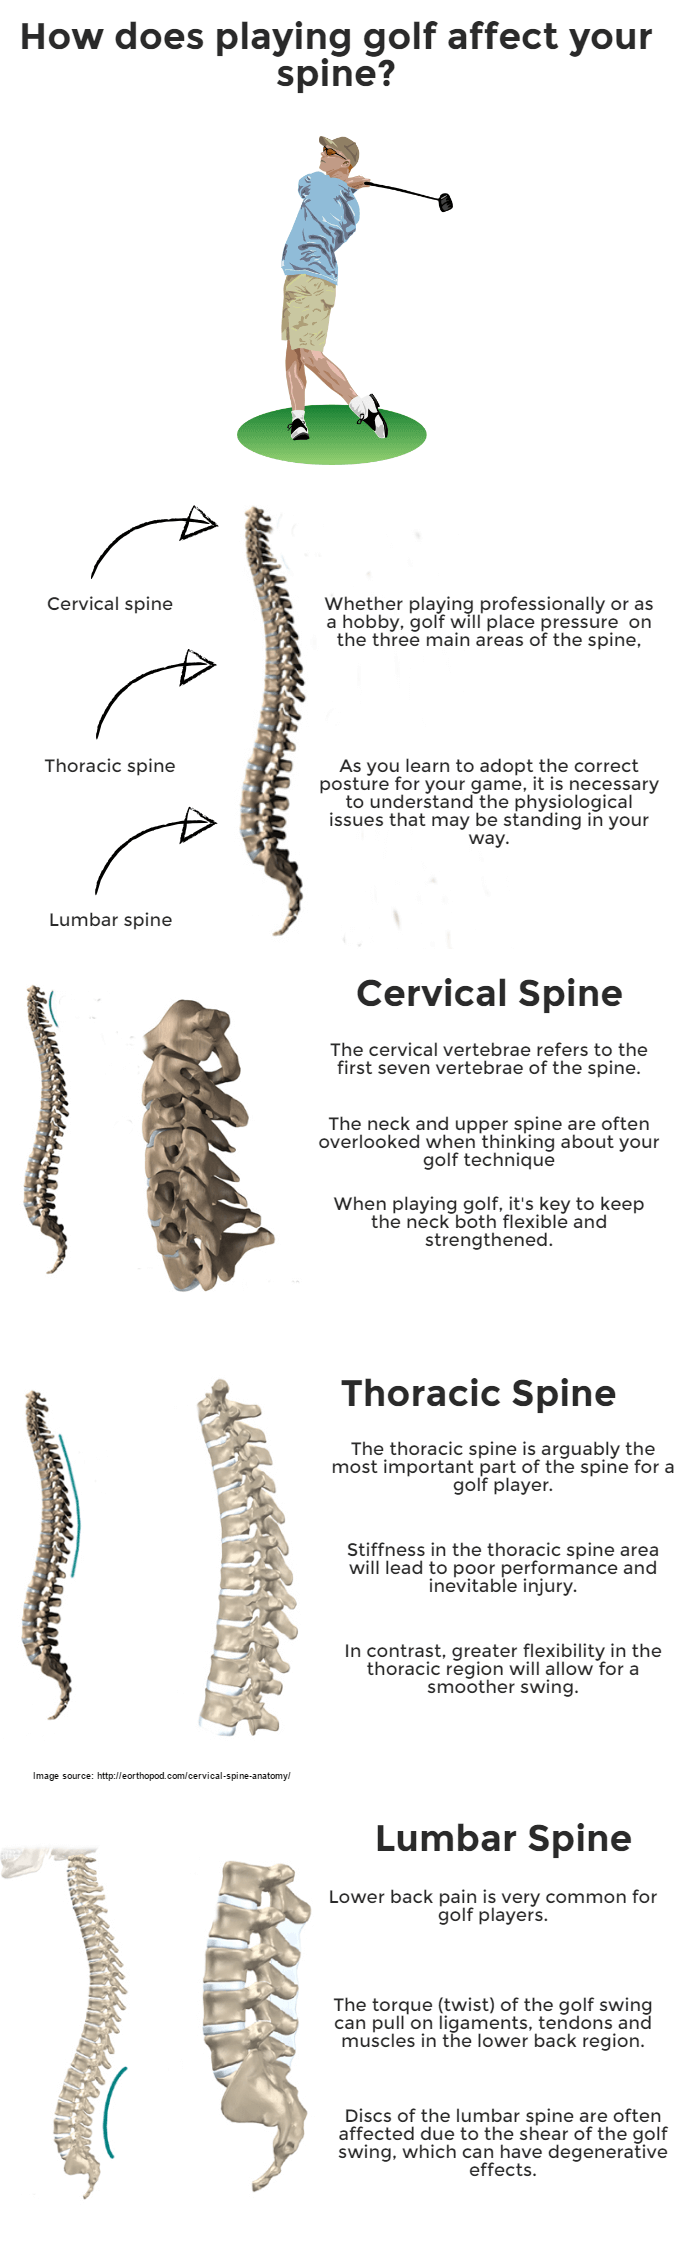 How does playing golf affect your spine